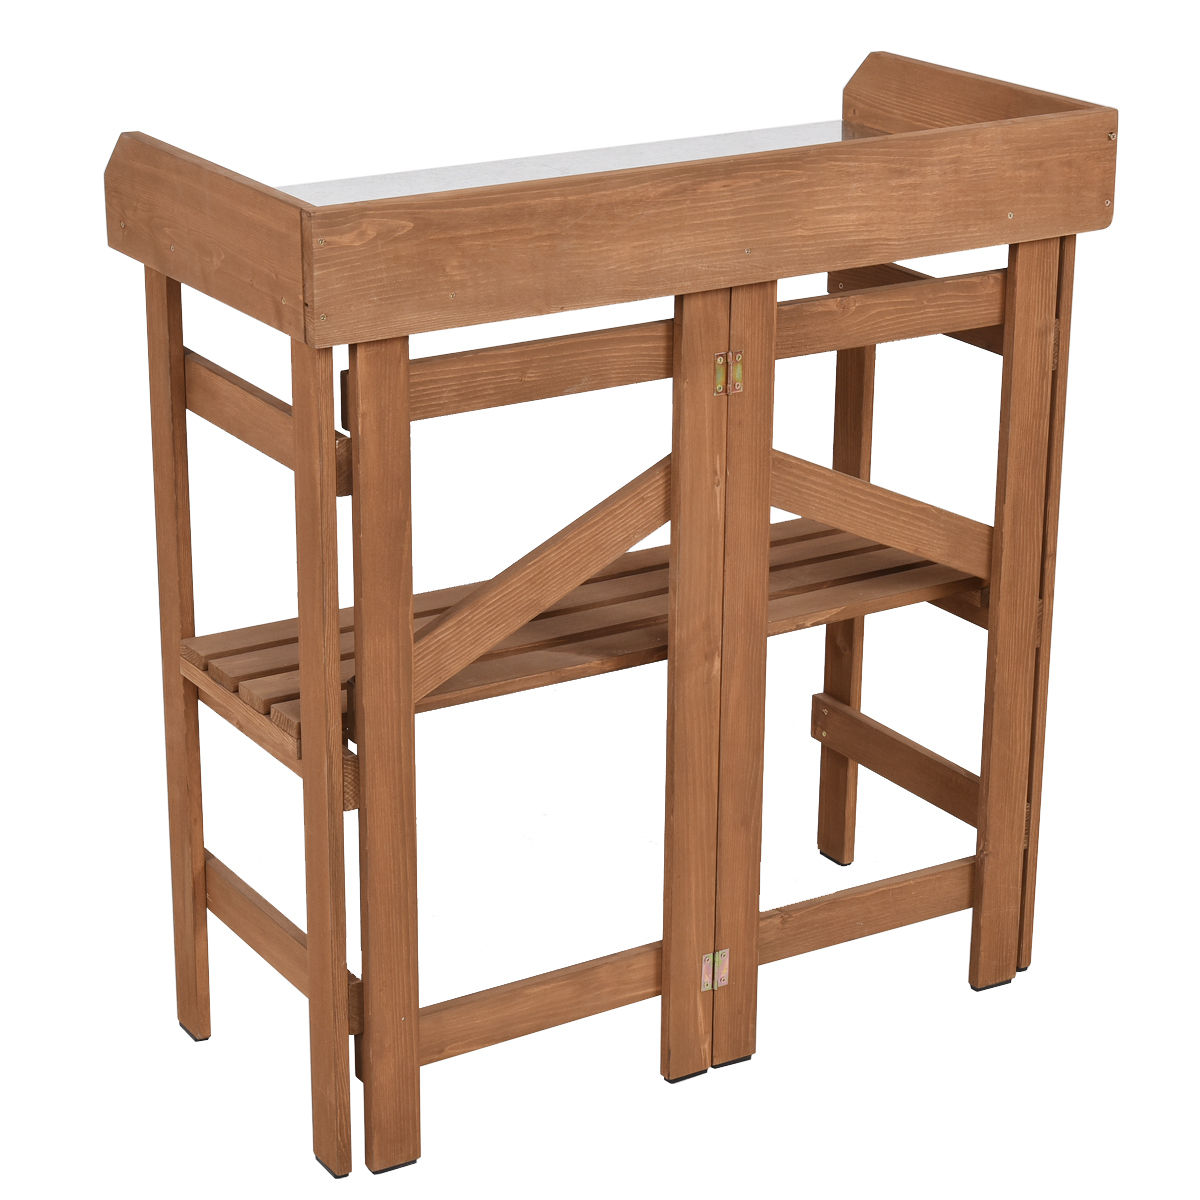 """GHP 32.1""""LX15.1""""WX34.0""""H Durable Natural Wood and Galvanized Steel Potting Bench"""